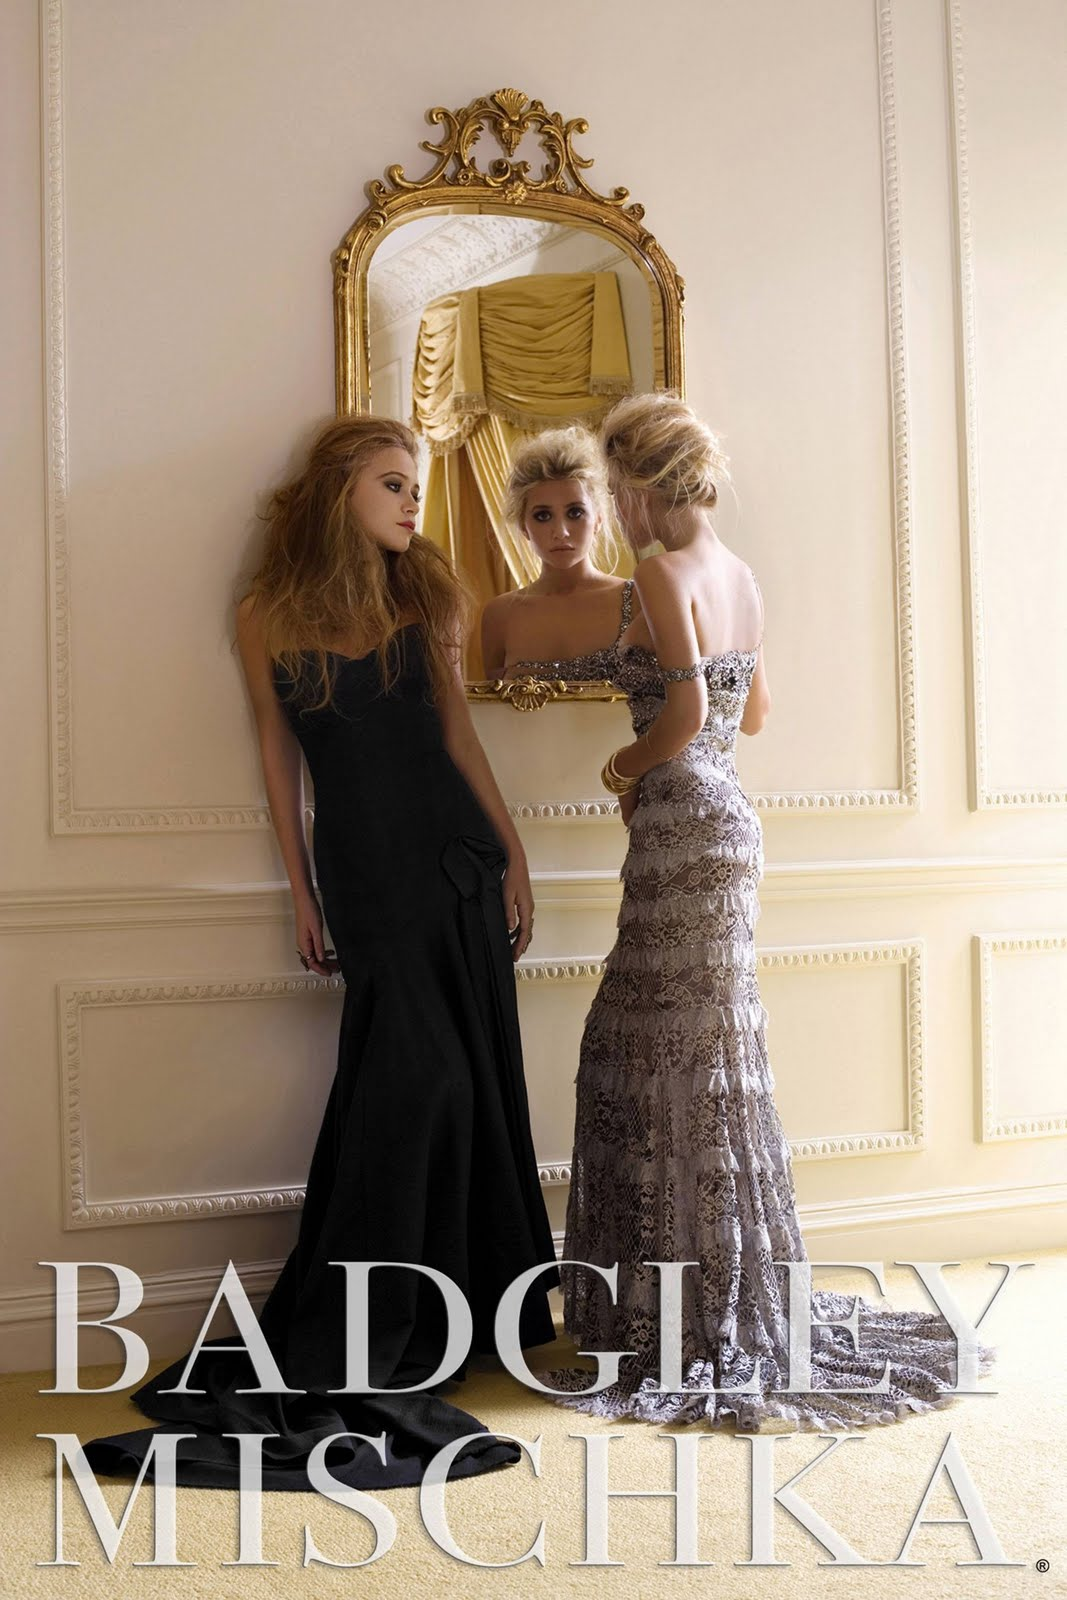 http://1.bp.blogspot.com/-_UMbx15HkpY/TdJgwkBY9qI/AAAAAAAAAQc/kfrihwJ8Ezo/s1600/mary-kate-ashley-olsen-badgley-mischka-ad-hq-01.jpg